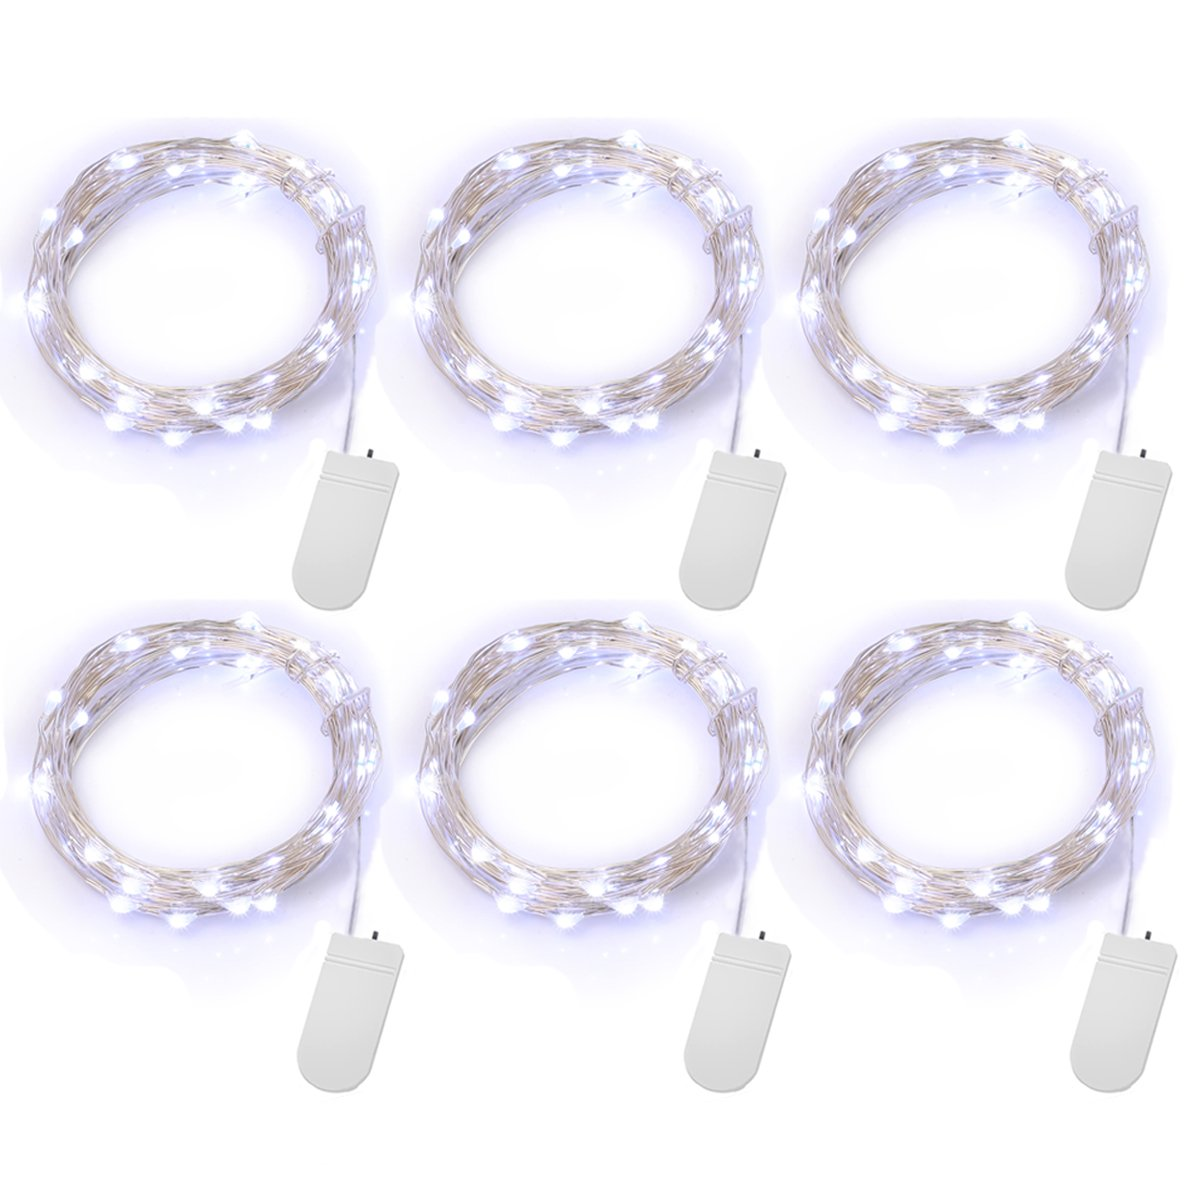 YIHONG 6 PCS Fairy Lights Battery Operated String Lights Led Moon Lights 7.2ft 20 LEDs White Firefly Lights Starry String Light for DIY Costume Wedding Easter Party Table Centerpiece Decor White